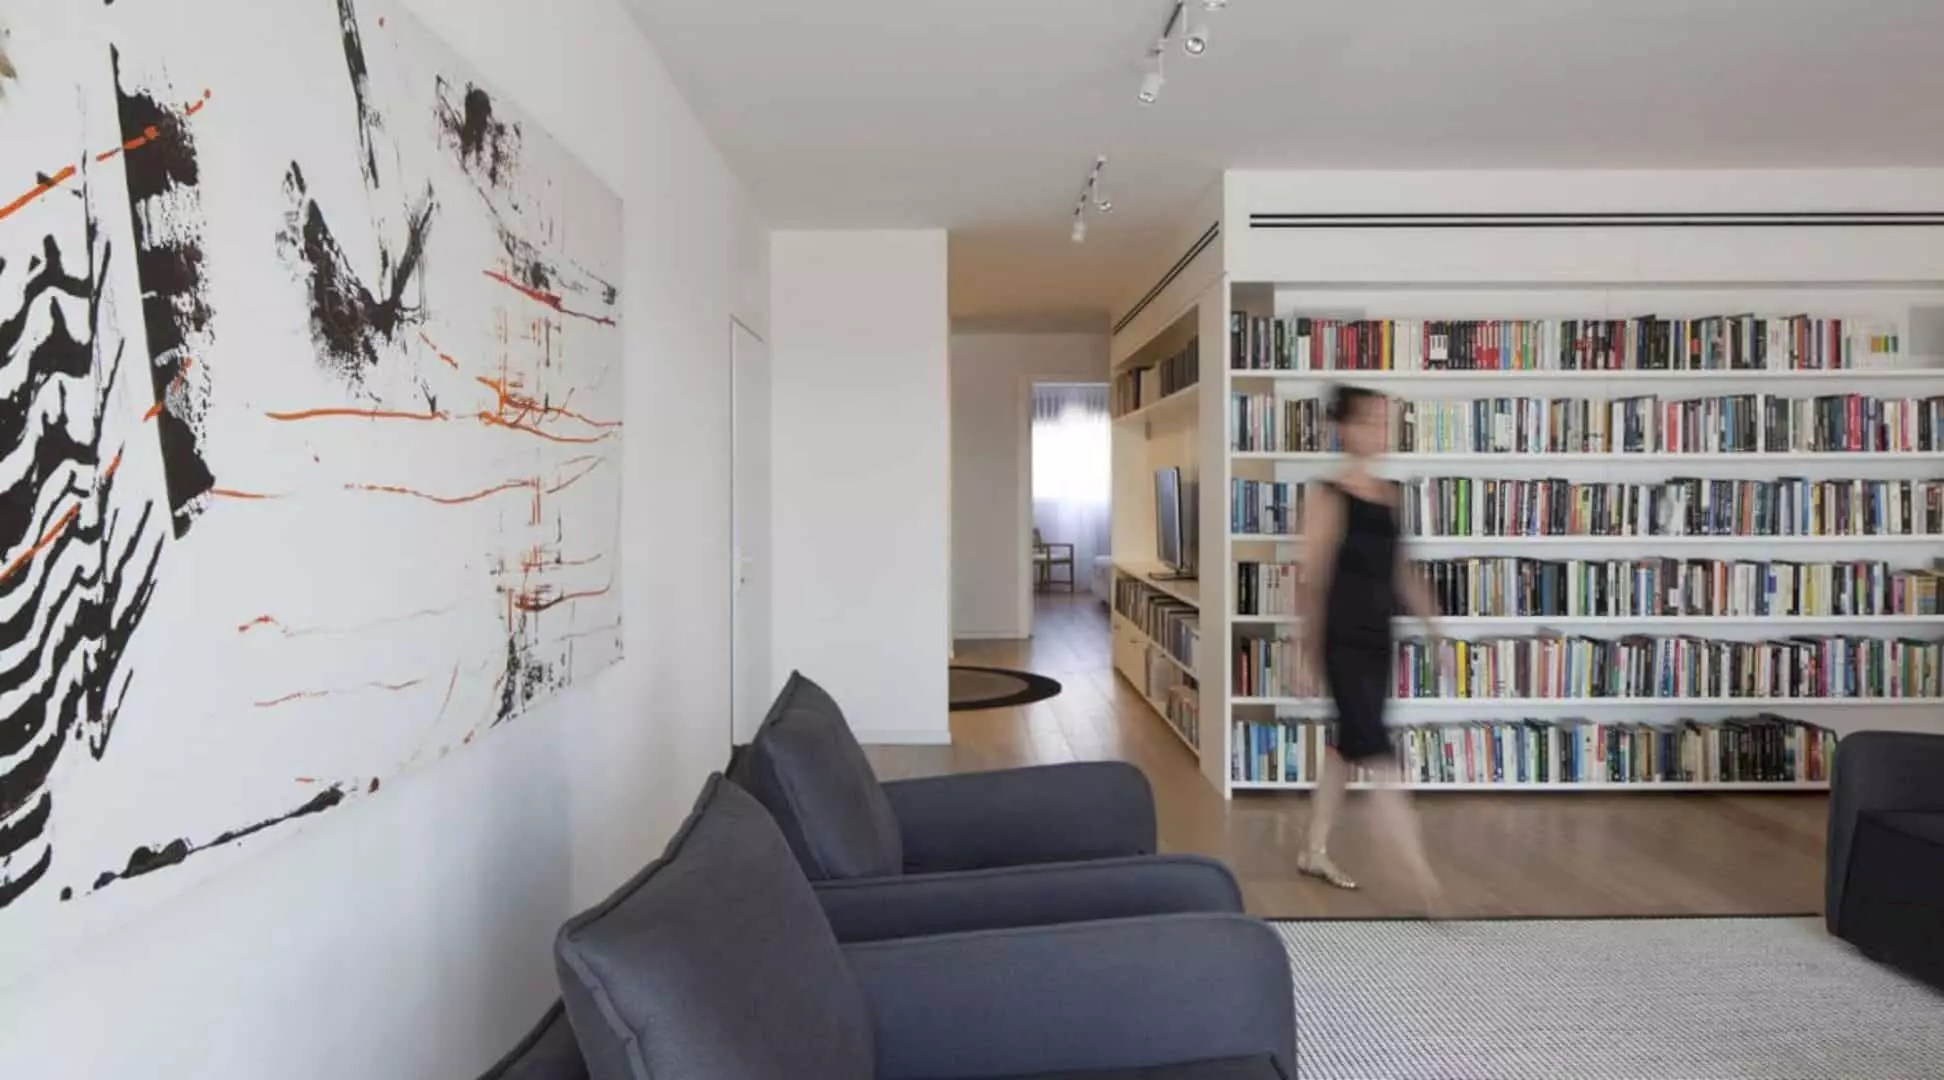 E Penthouse: A Large Apartment with Modern Interior and A Library in the Middle of the Public Space